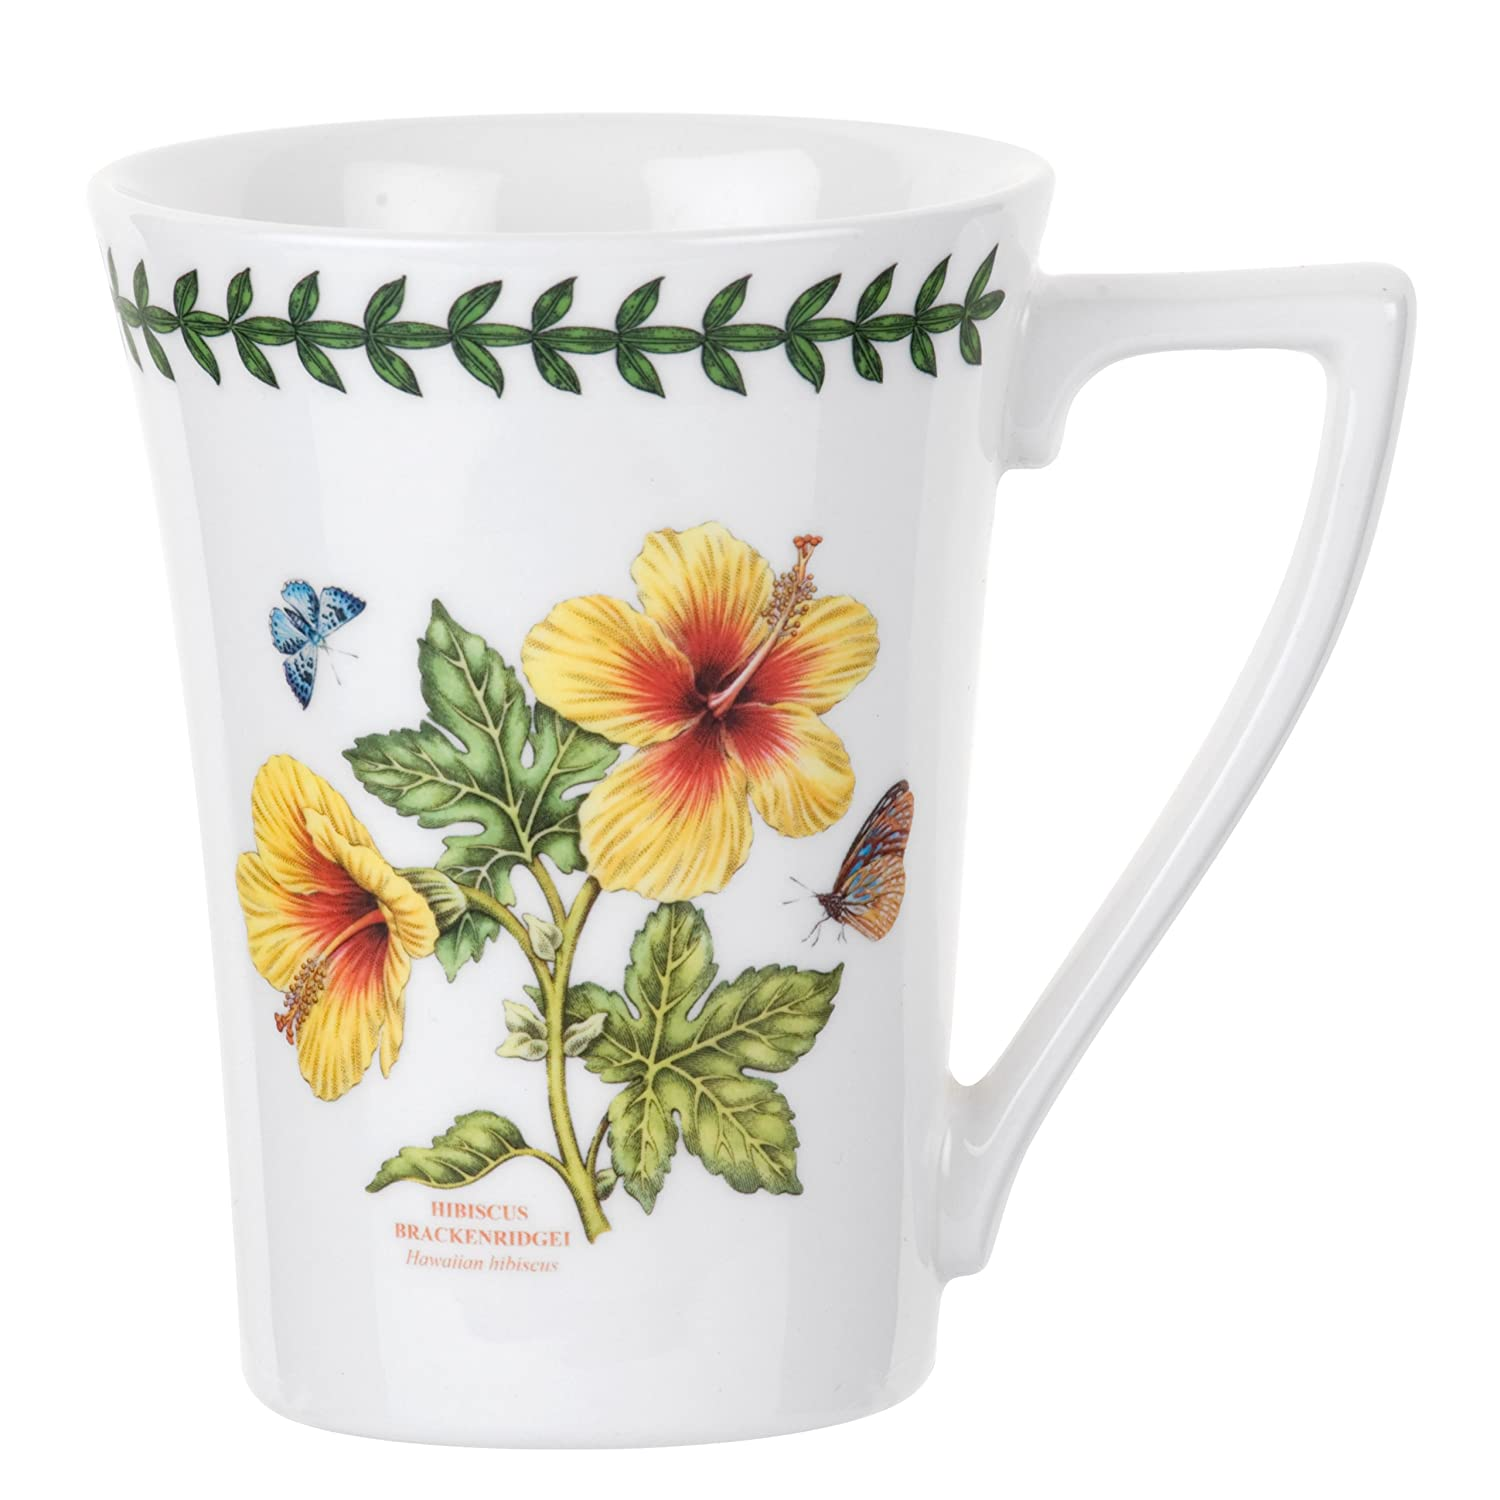 Image Result For Portmeirion Botanic Garden Mugs